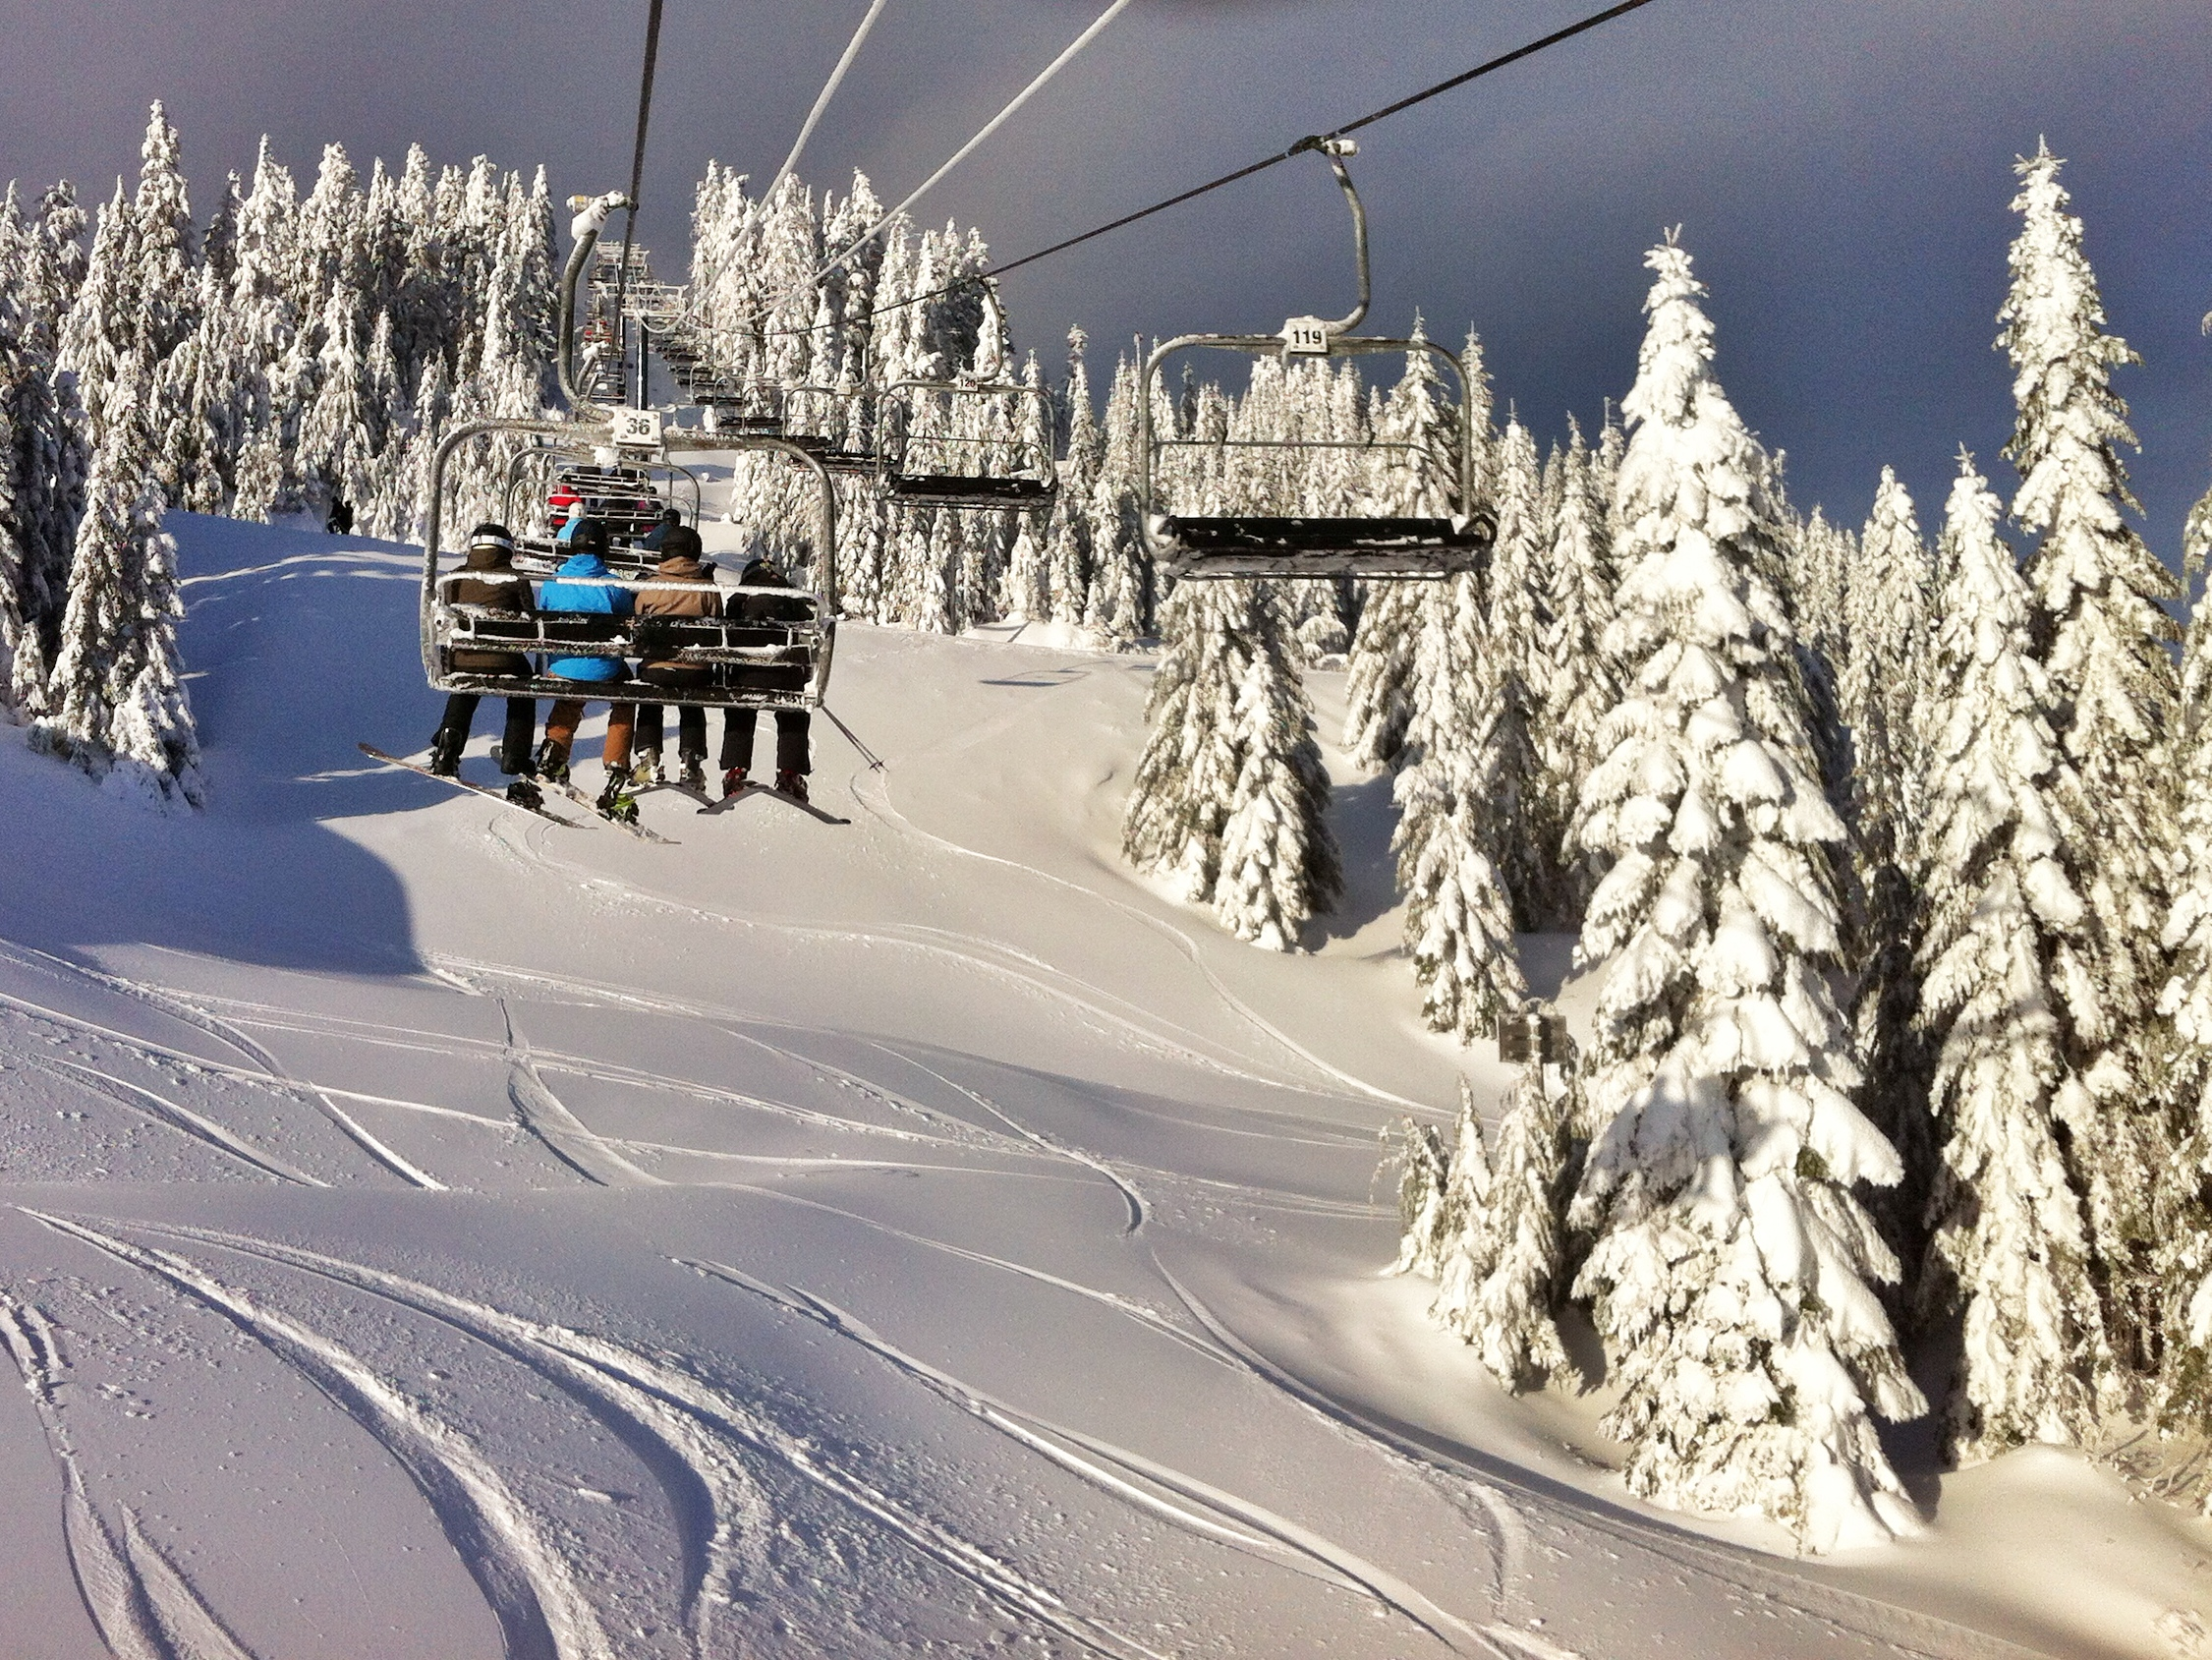 PHOTOS: Snowboarding season has arrived in Vancouver!